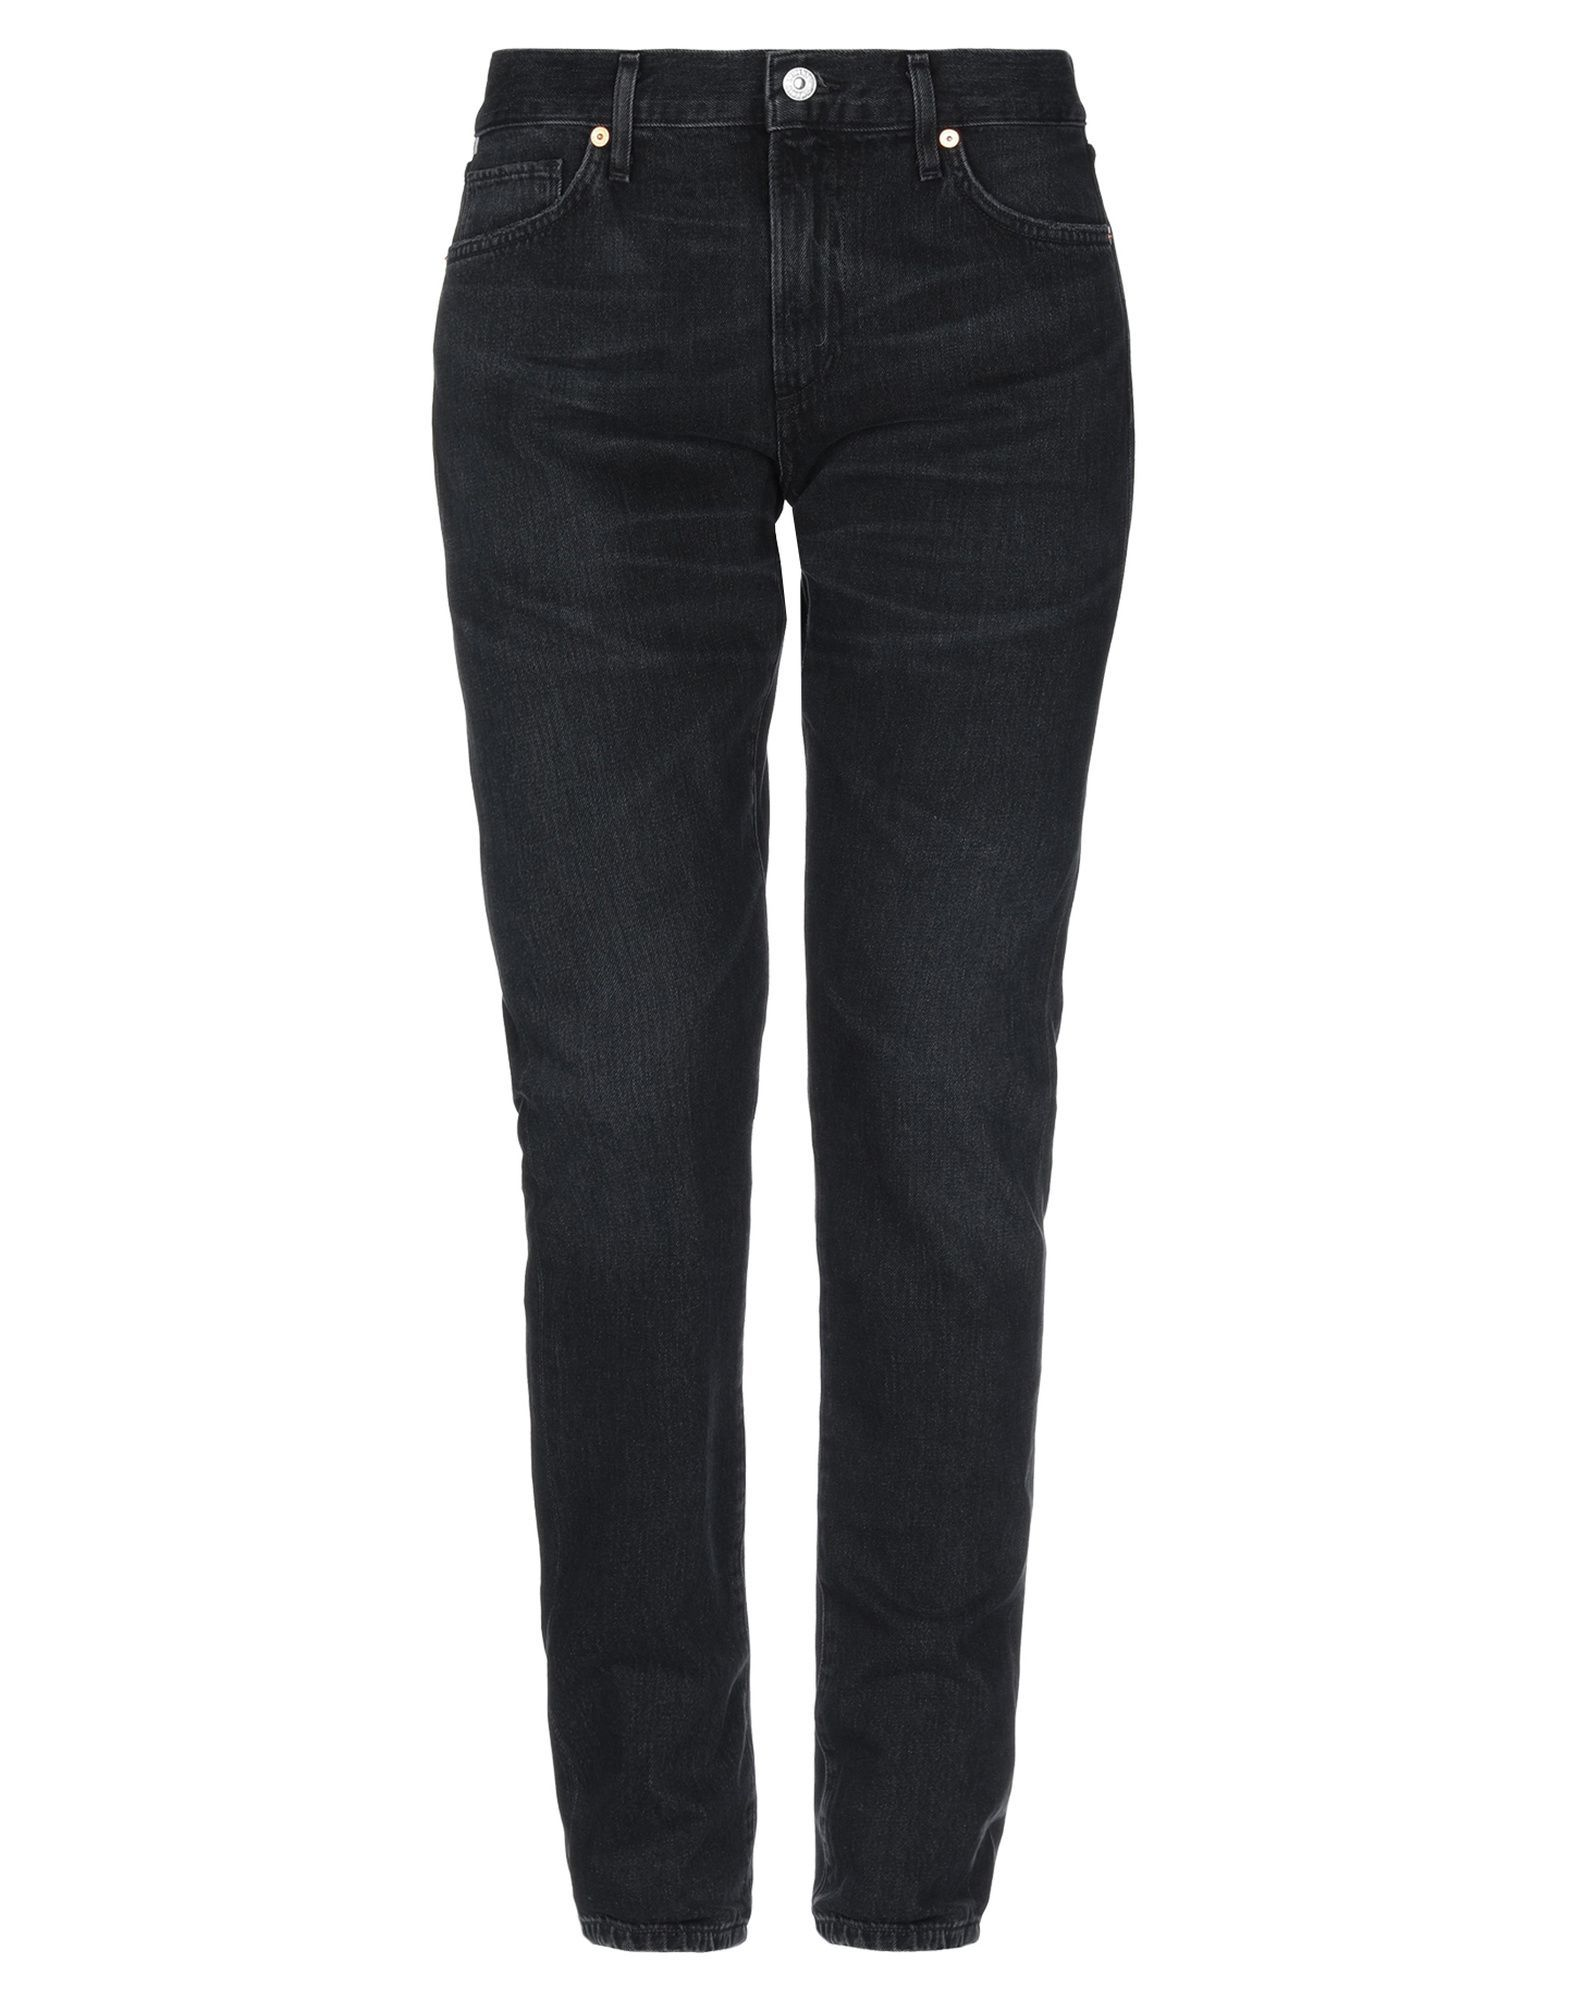 Citizens Of Humanity Black Cotton Jeans